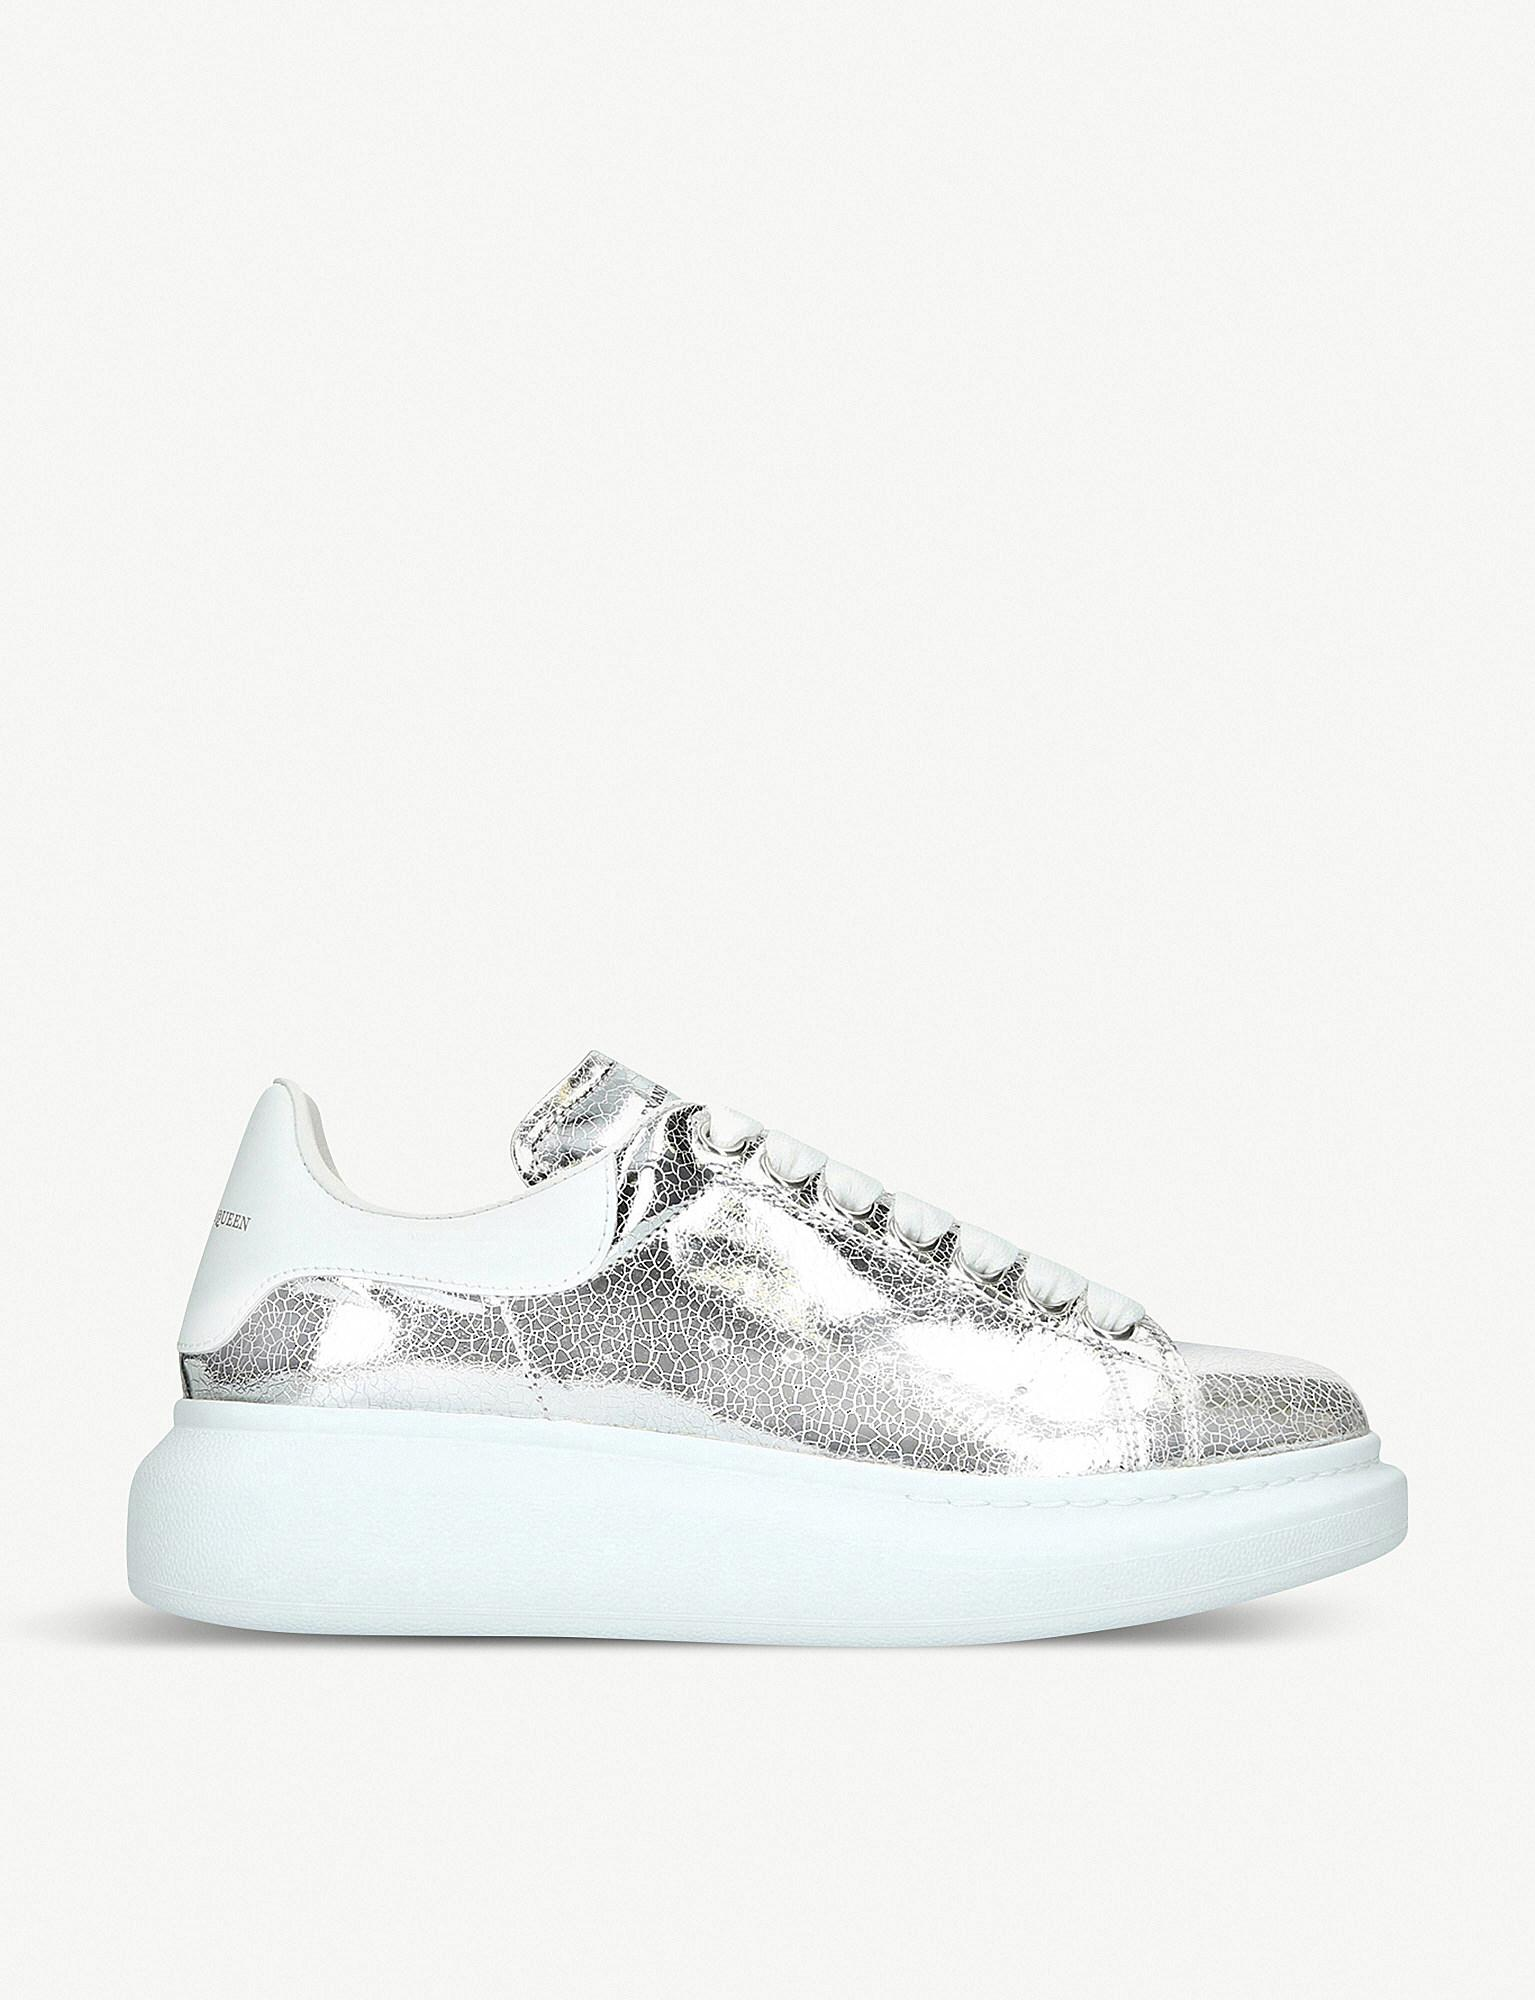 8dd6a2672d0984 Lyst - Alexander McQueen Runway Cracked-metallic Leather Trainers in ...